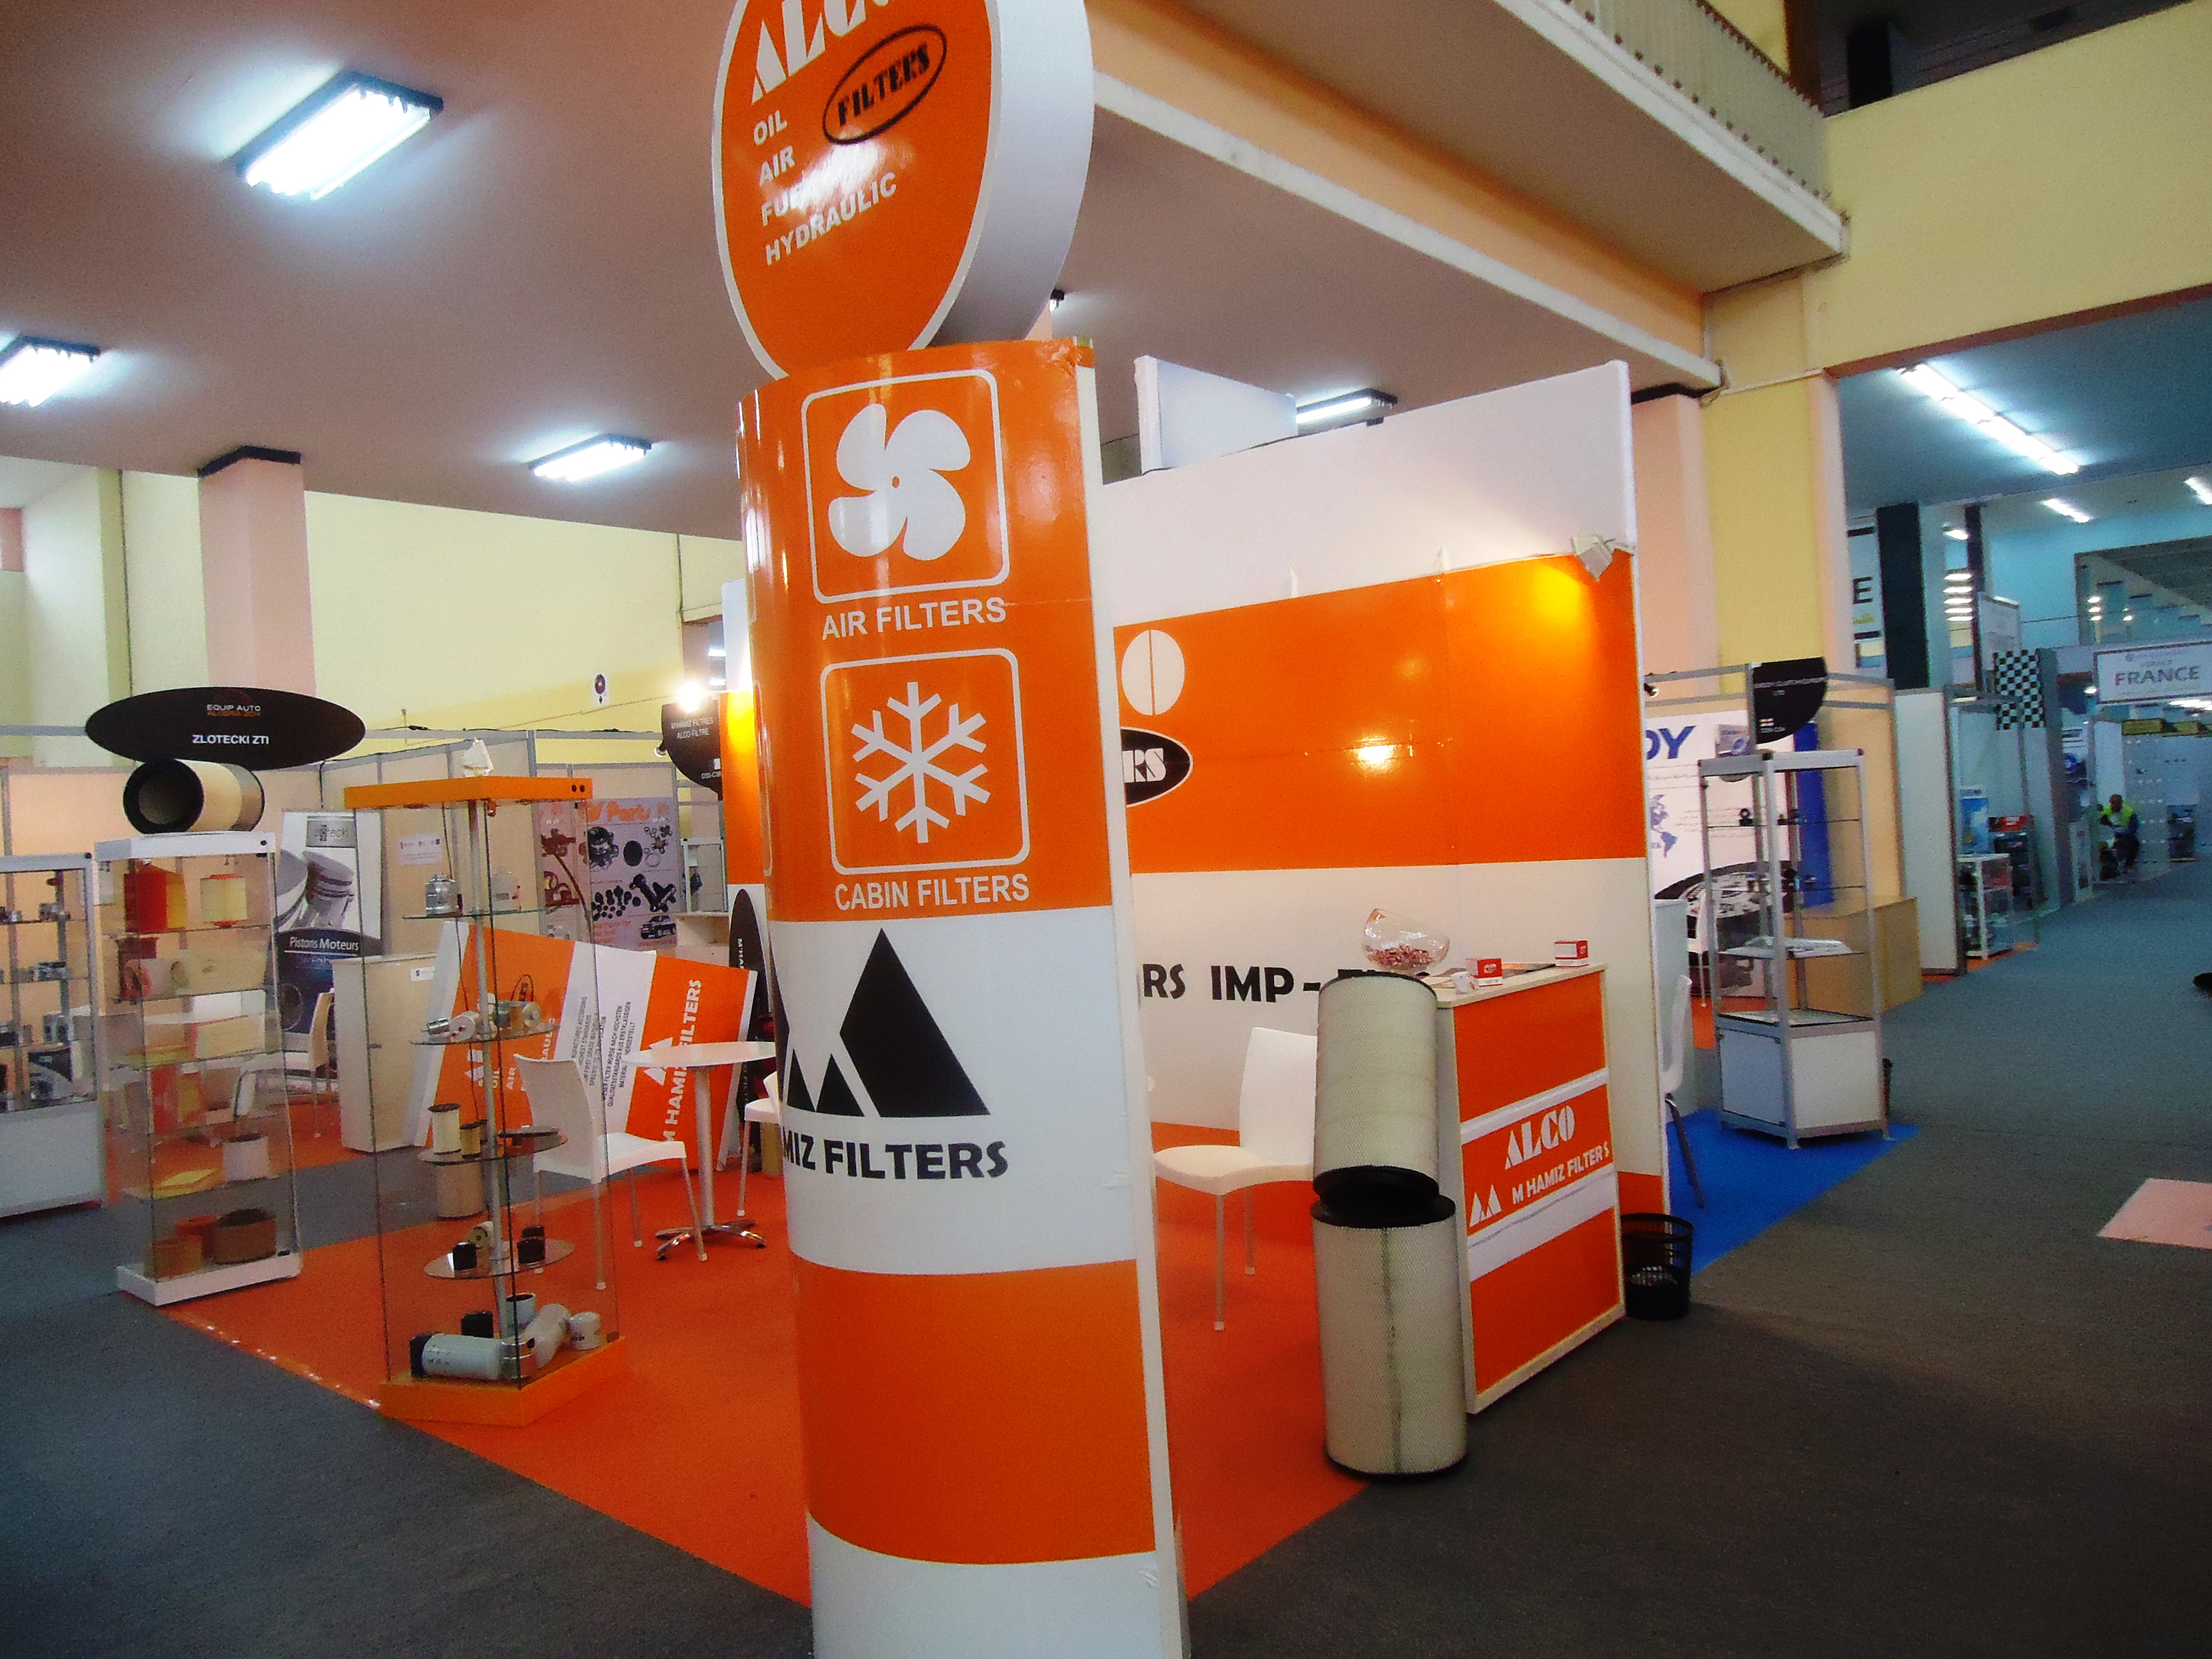 Alco Filters Exhibits In Equip Auto Algeria 2014 Fuel For Becoming An Reseller Please Contact Mr Stelios Symeonides Sales Export Manager Tel 357 22 467667 Fax 484450